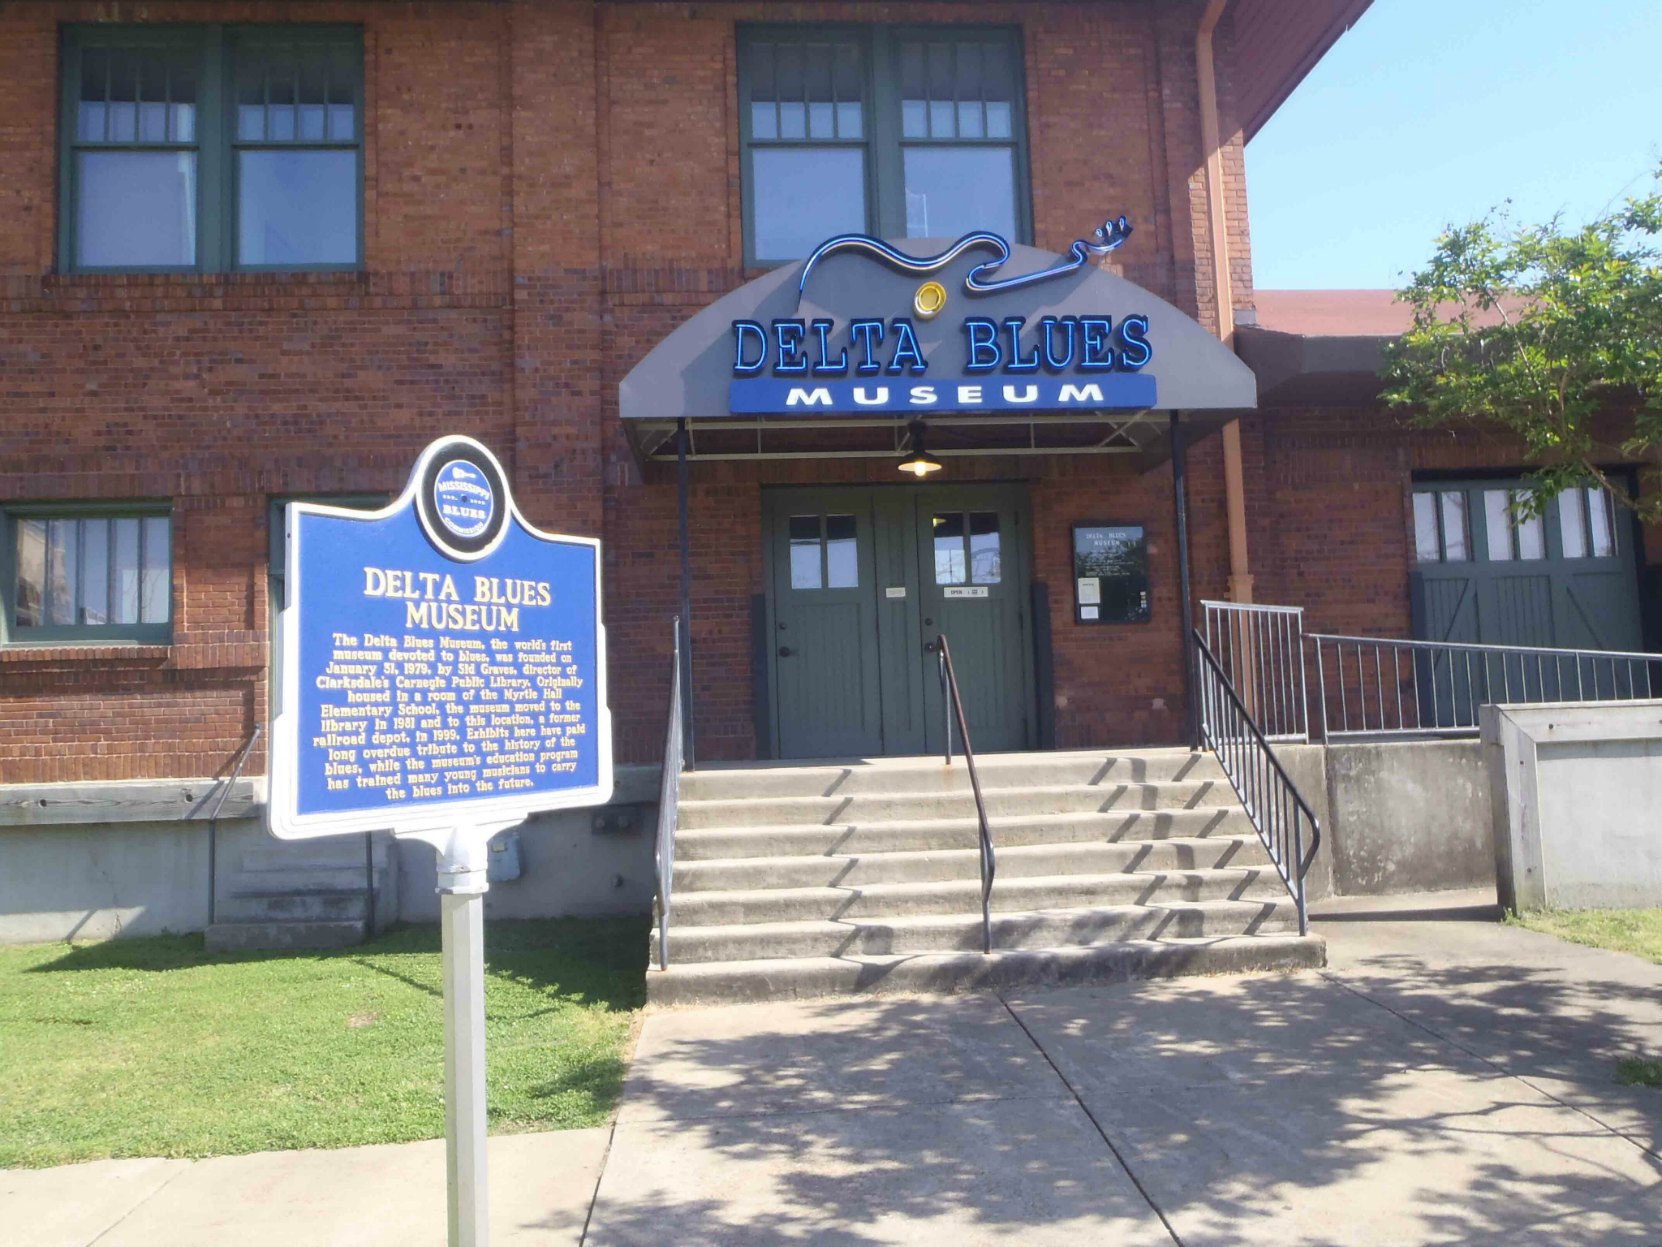 Delta Blues Museum, old Clarksdale Rail Depot section, Clarksdale, Mississippi